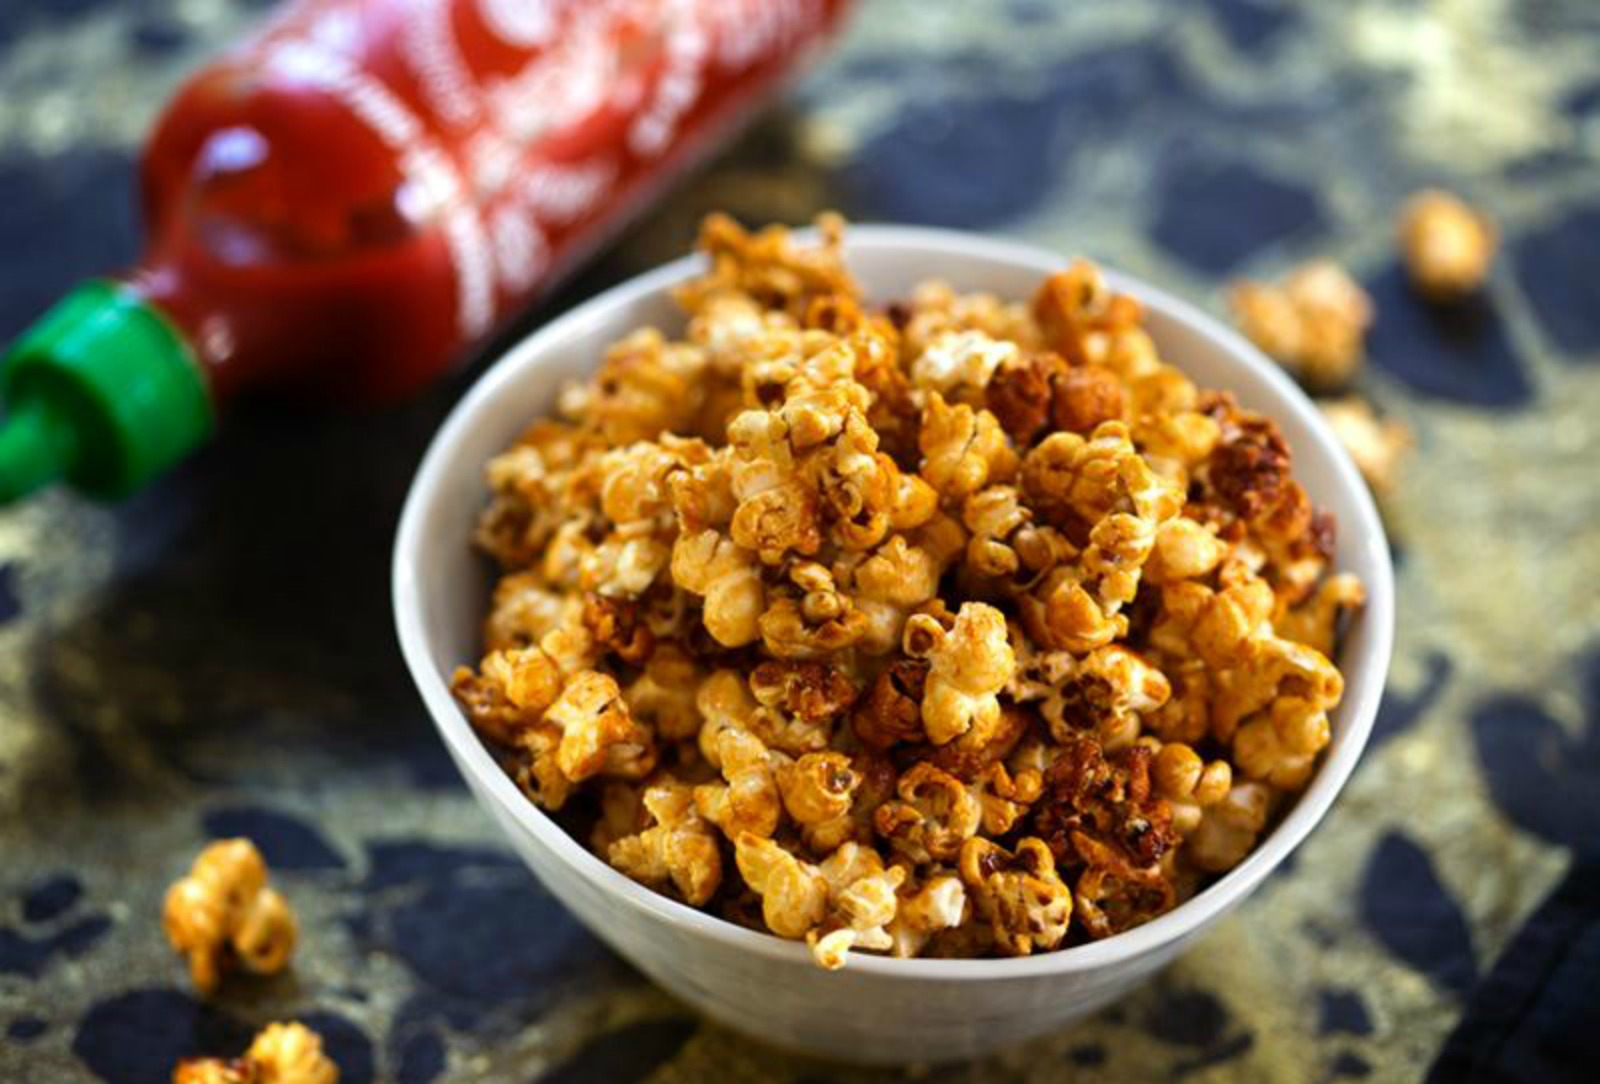 10 New and Creative Ways to Flavor Popcorn